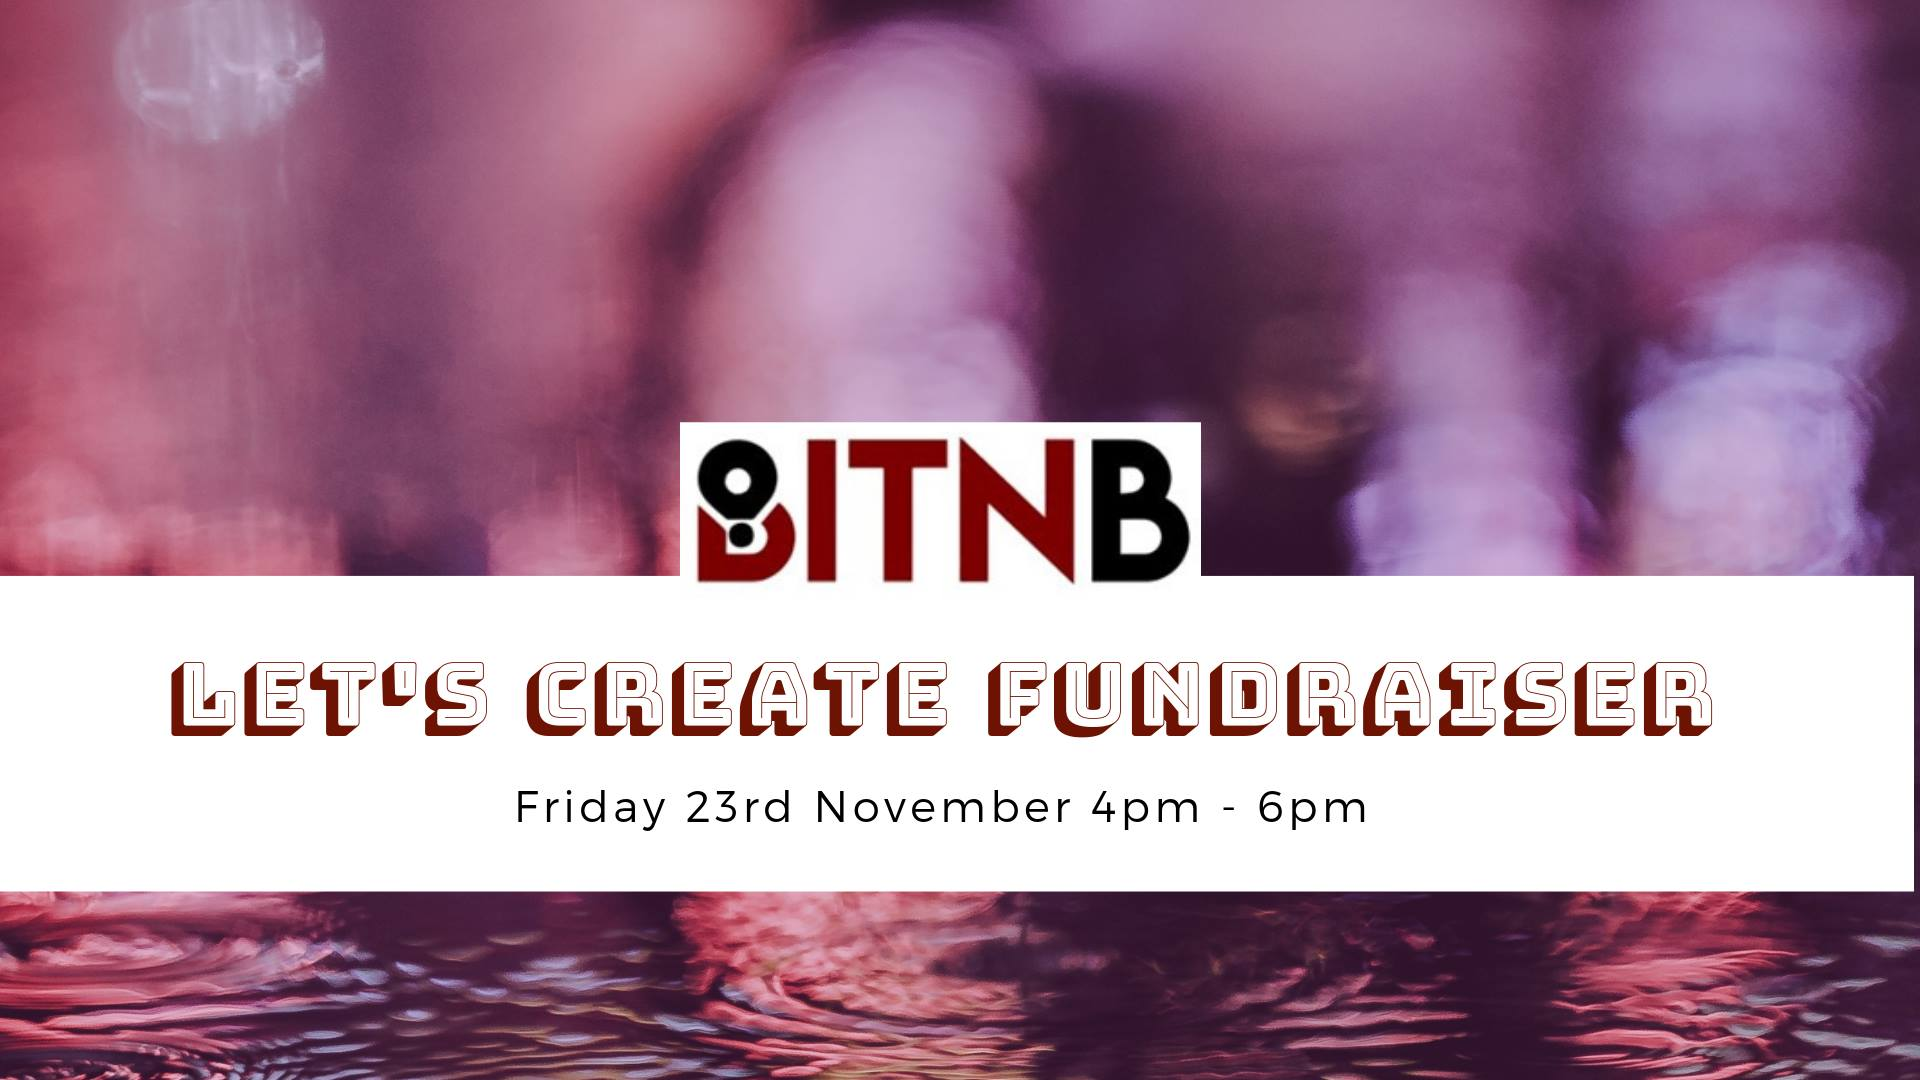 BITNB Let's Create Fundraiser